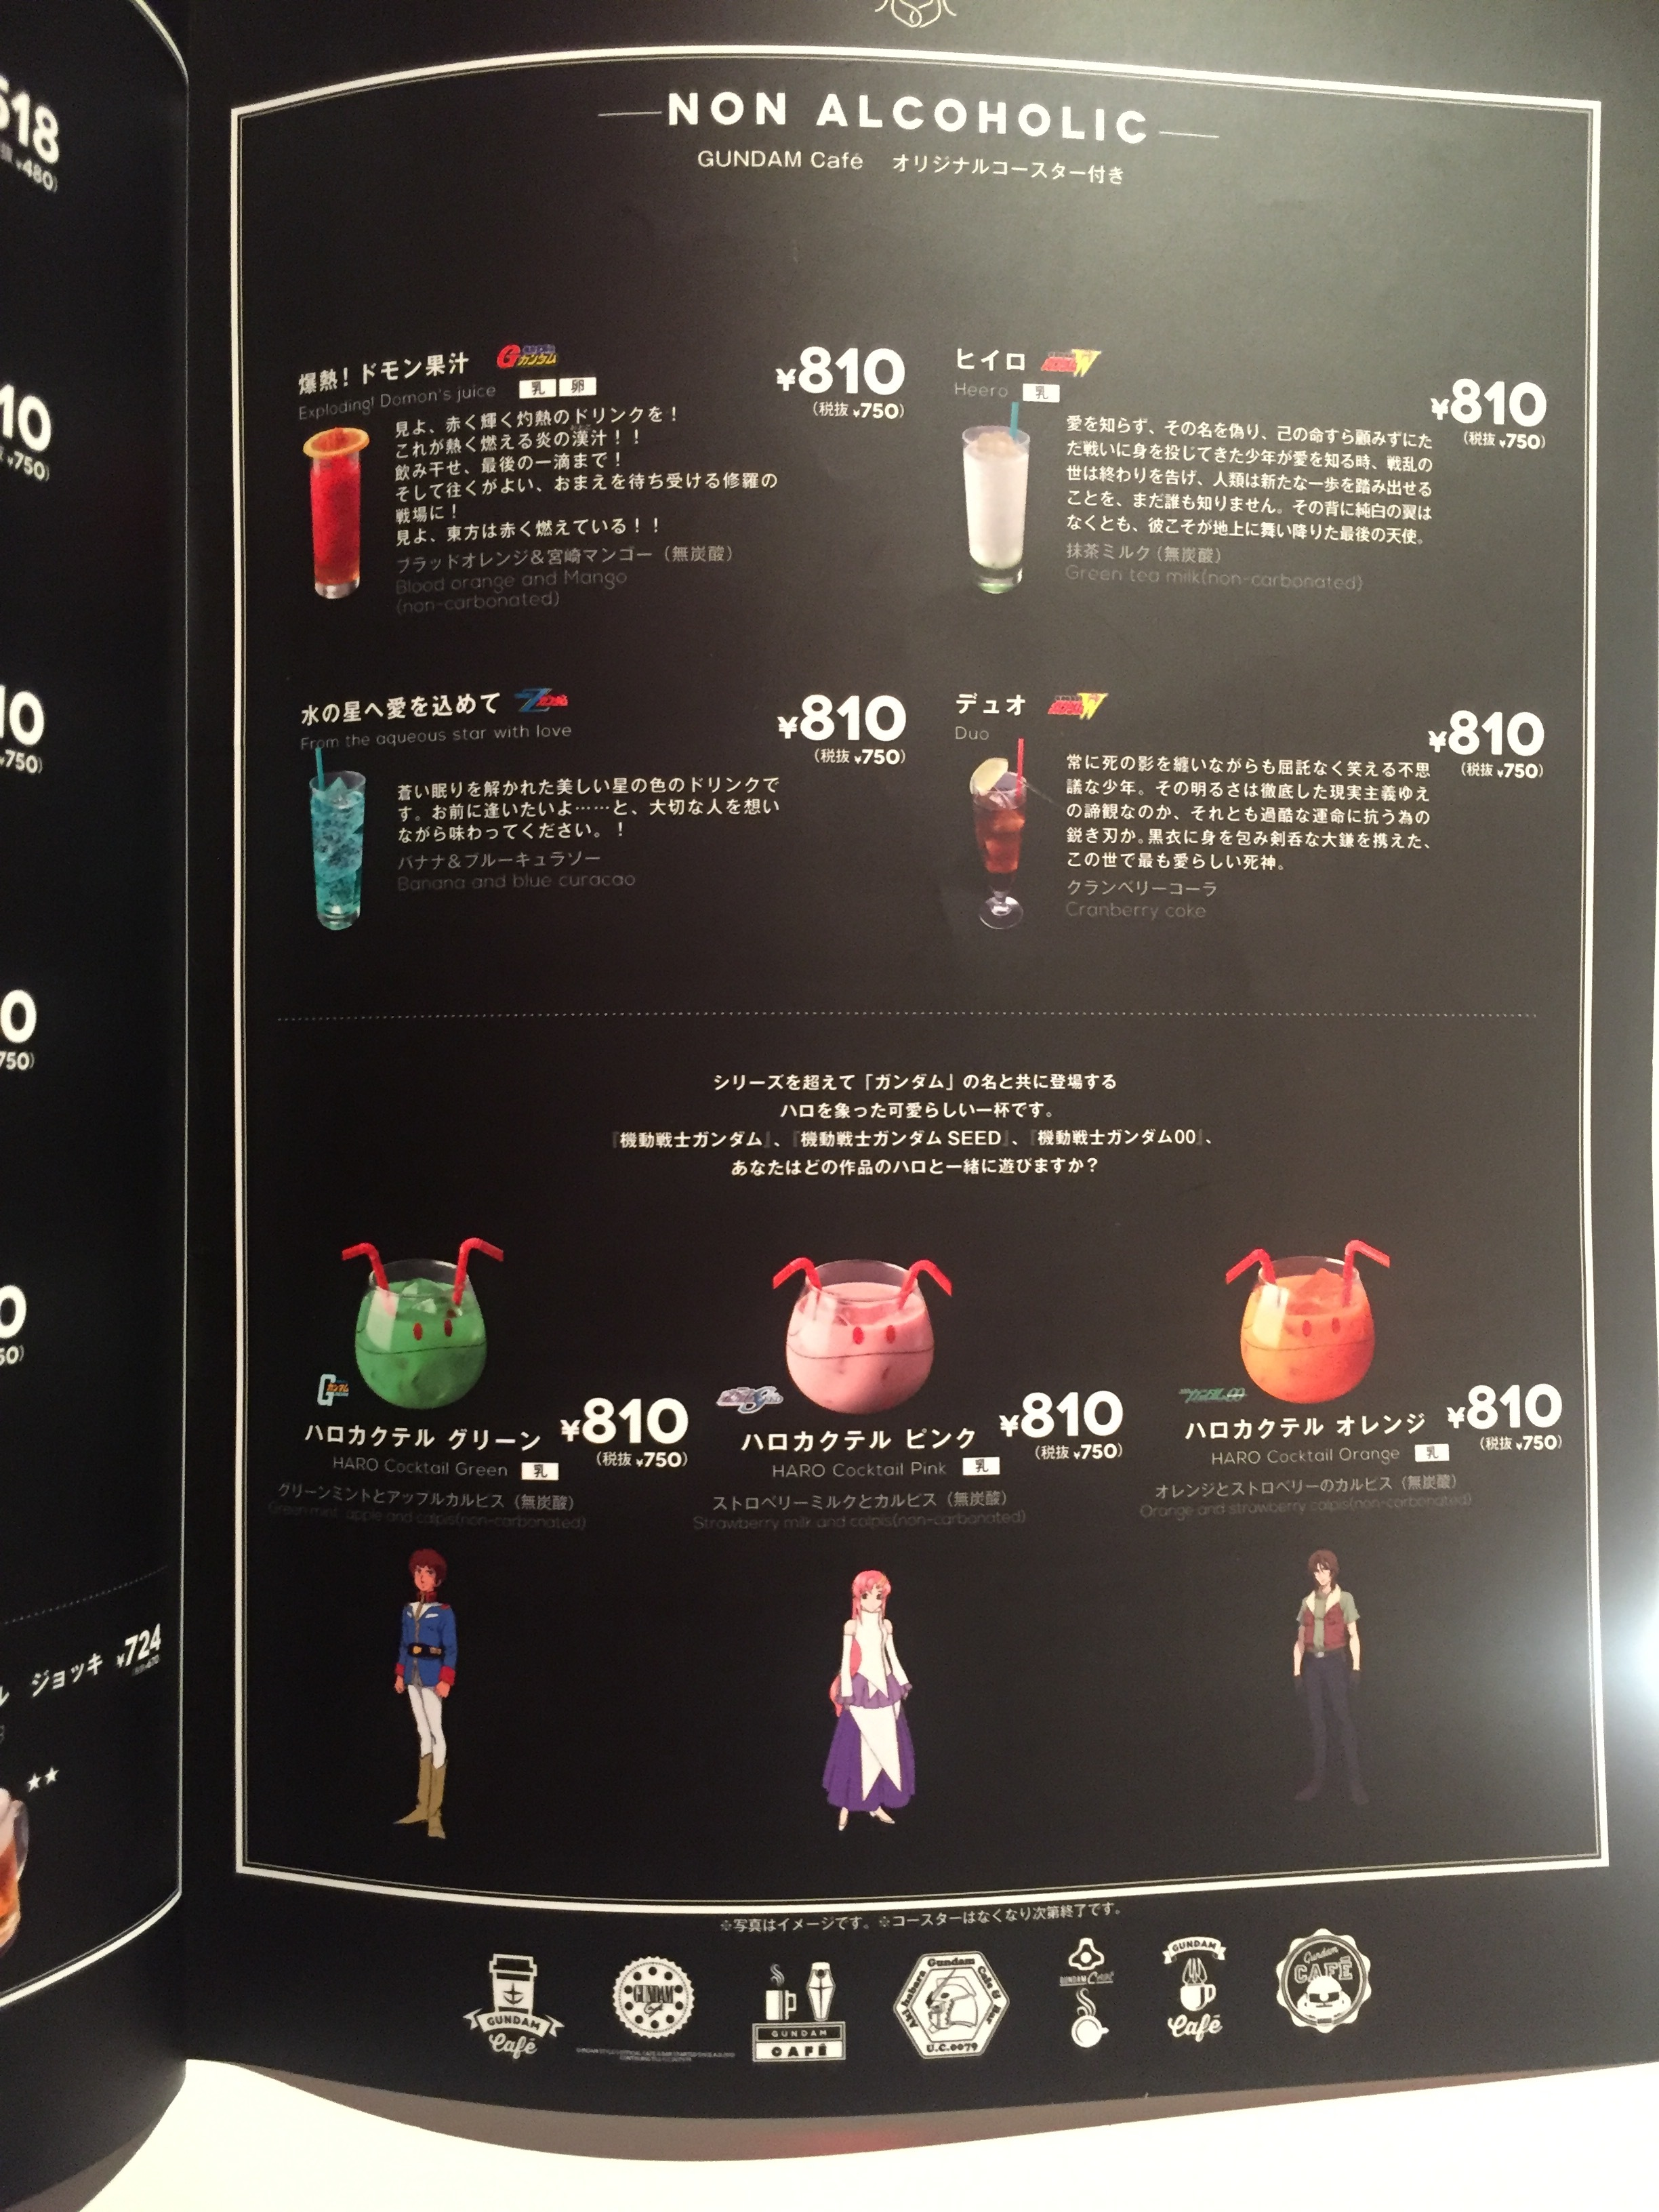 gundam cafe non alcoholic menu.JPG